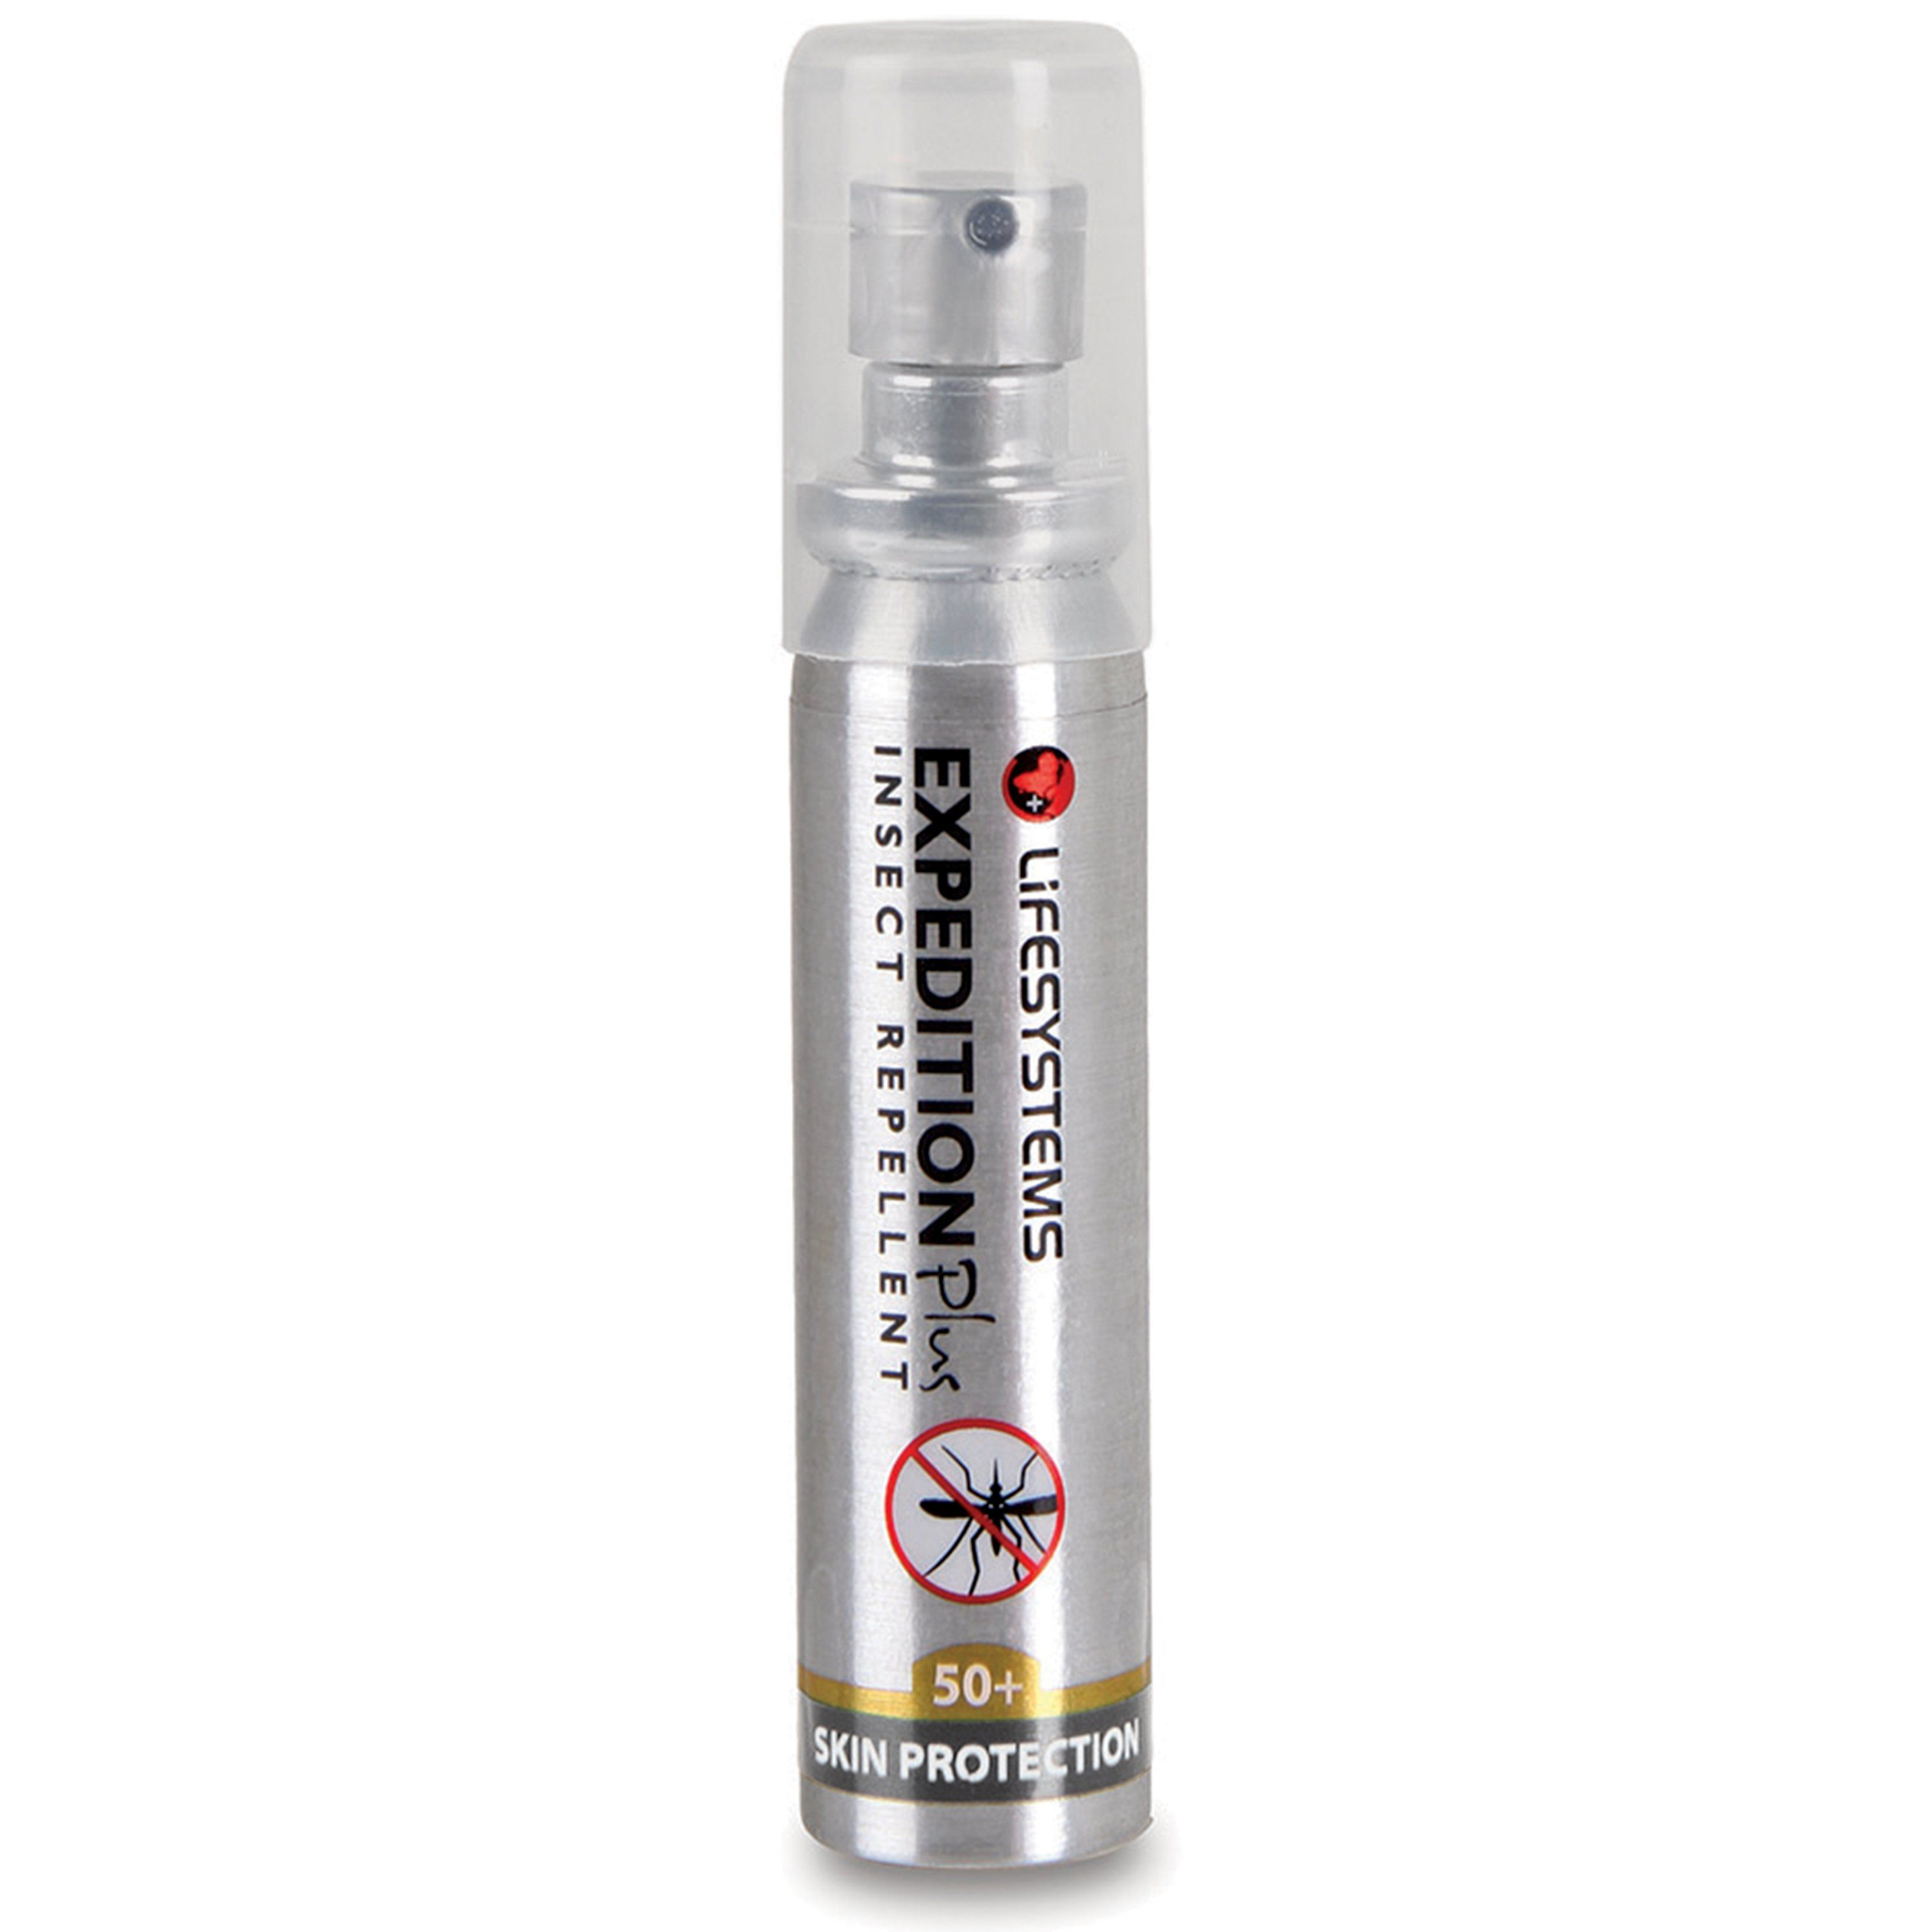 LIFESYSTEMS Expedition 50+ 25ml Insect Repellent Spray